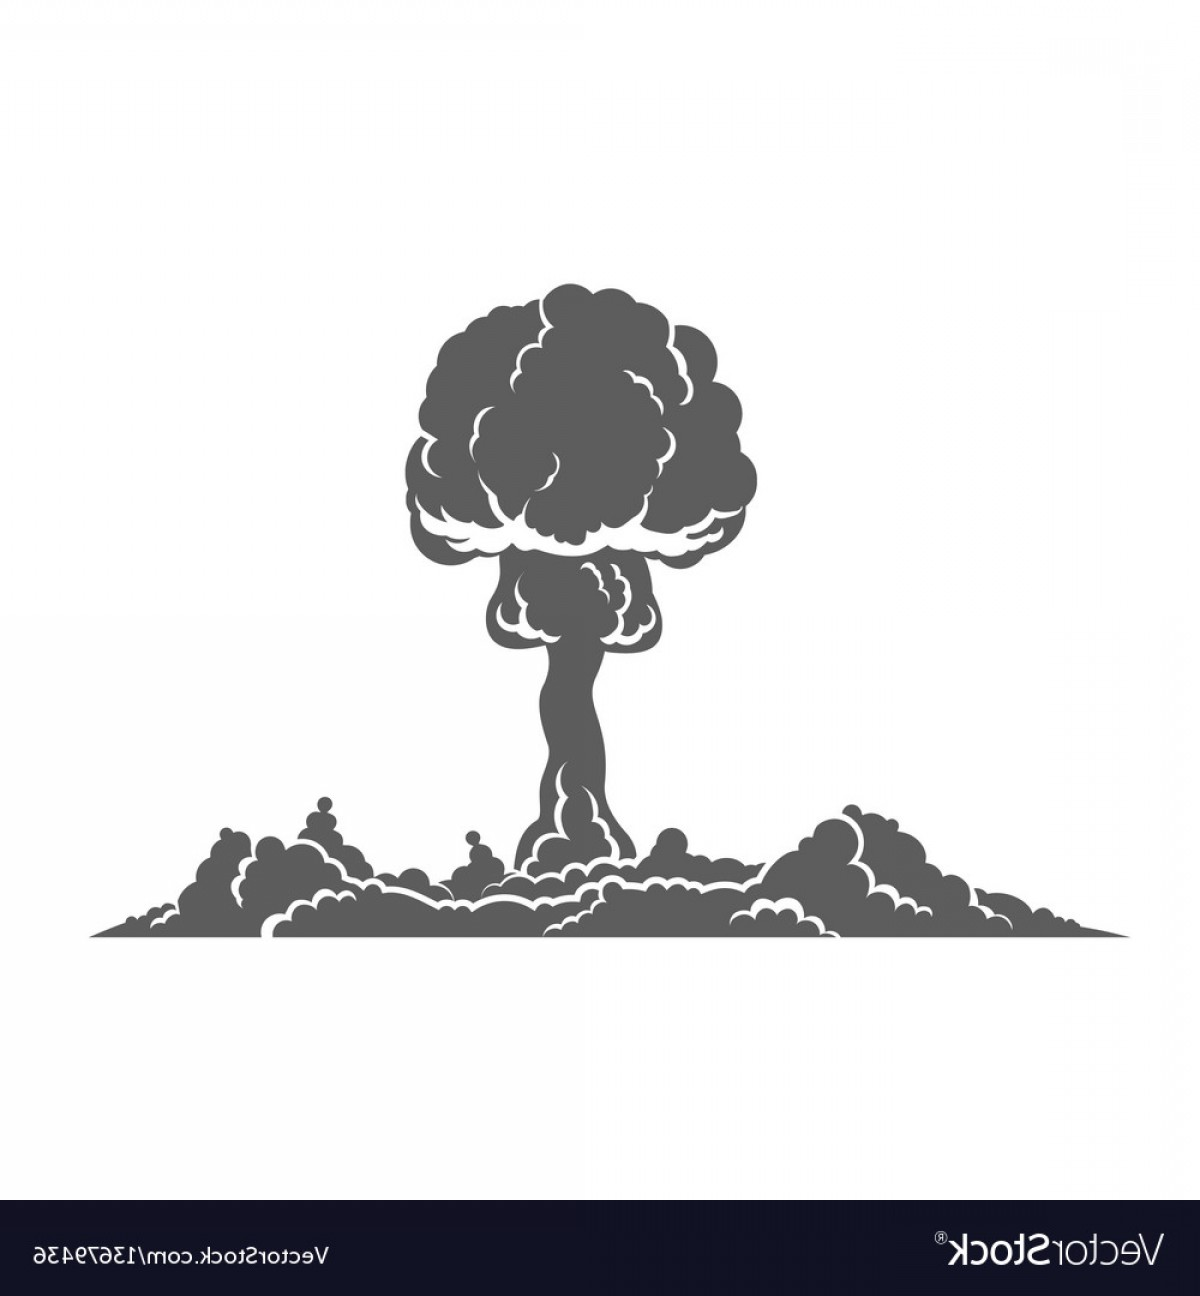 Atomic Bomb Explosion Vector: Nuclear Explosion Silhouette Concept Vector